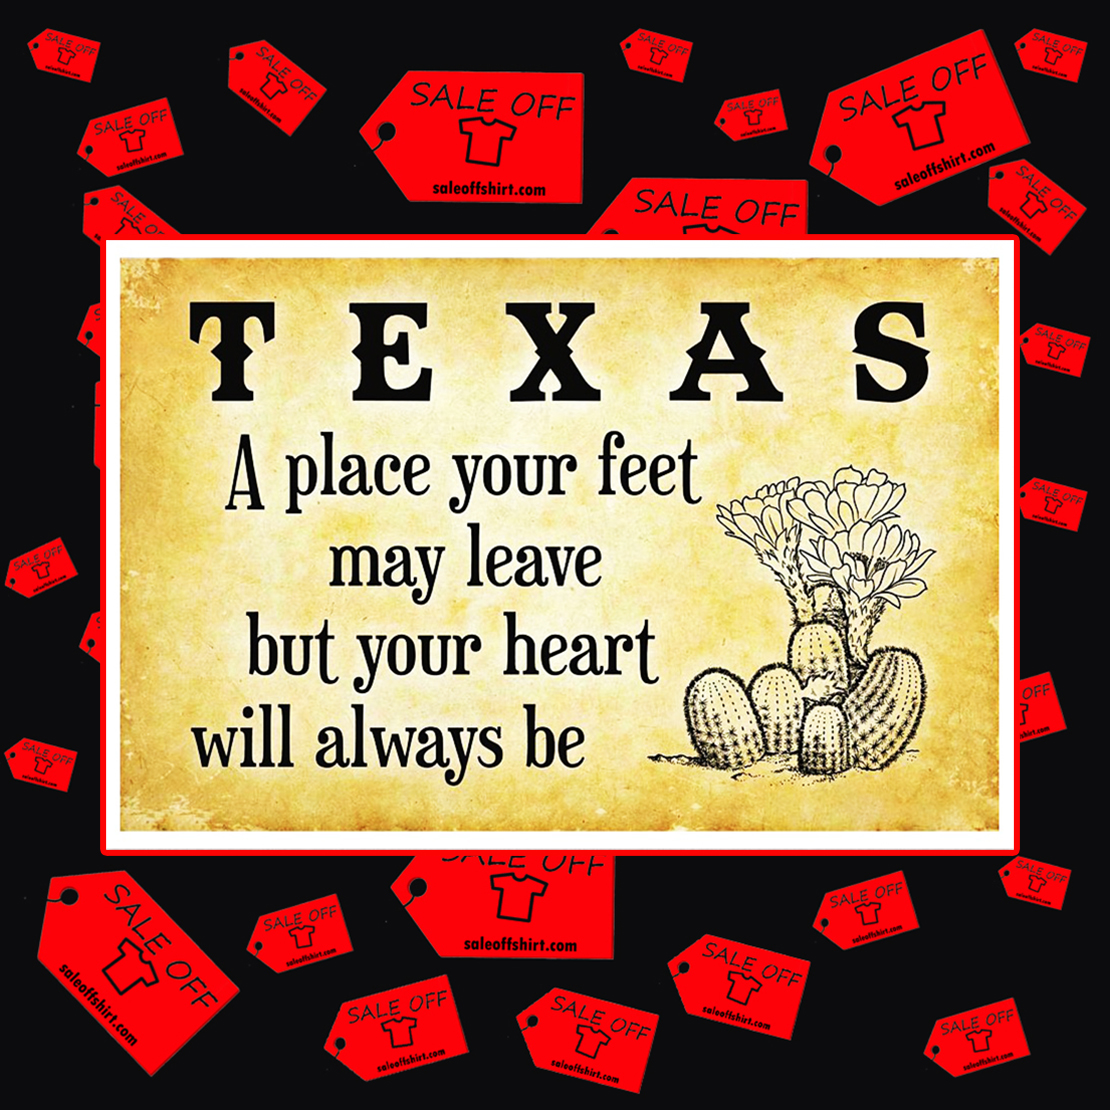 Texas a place your feet may leave but your heart will always be poster 17x11